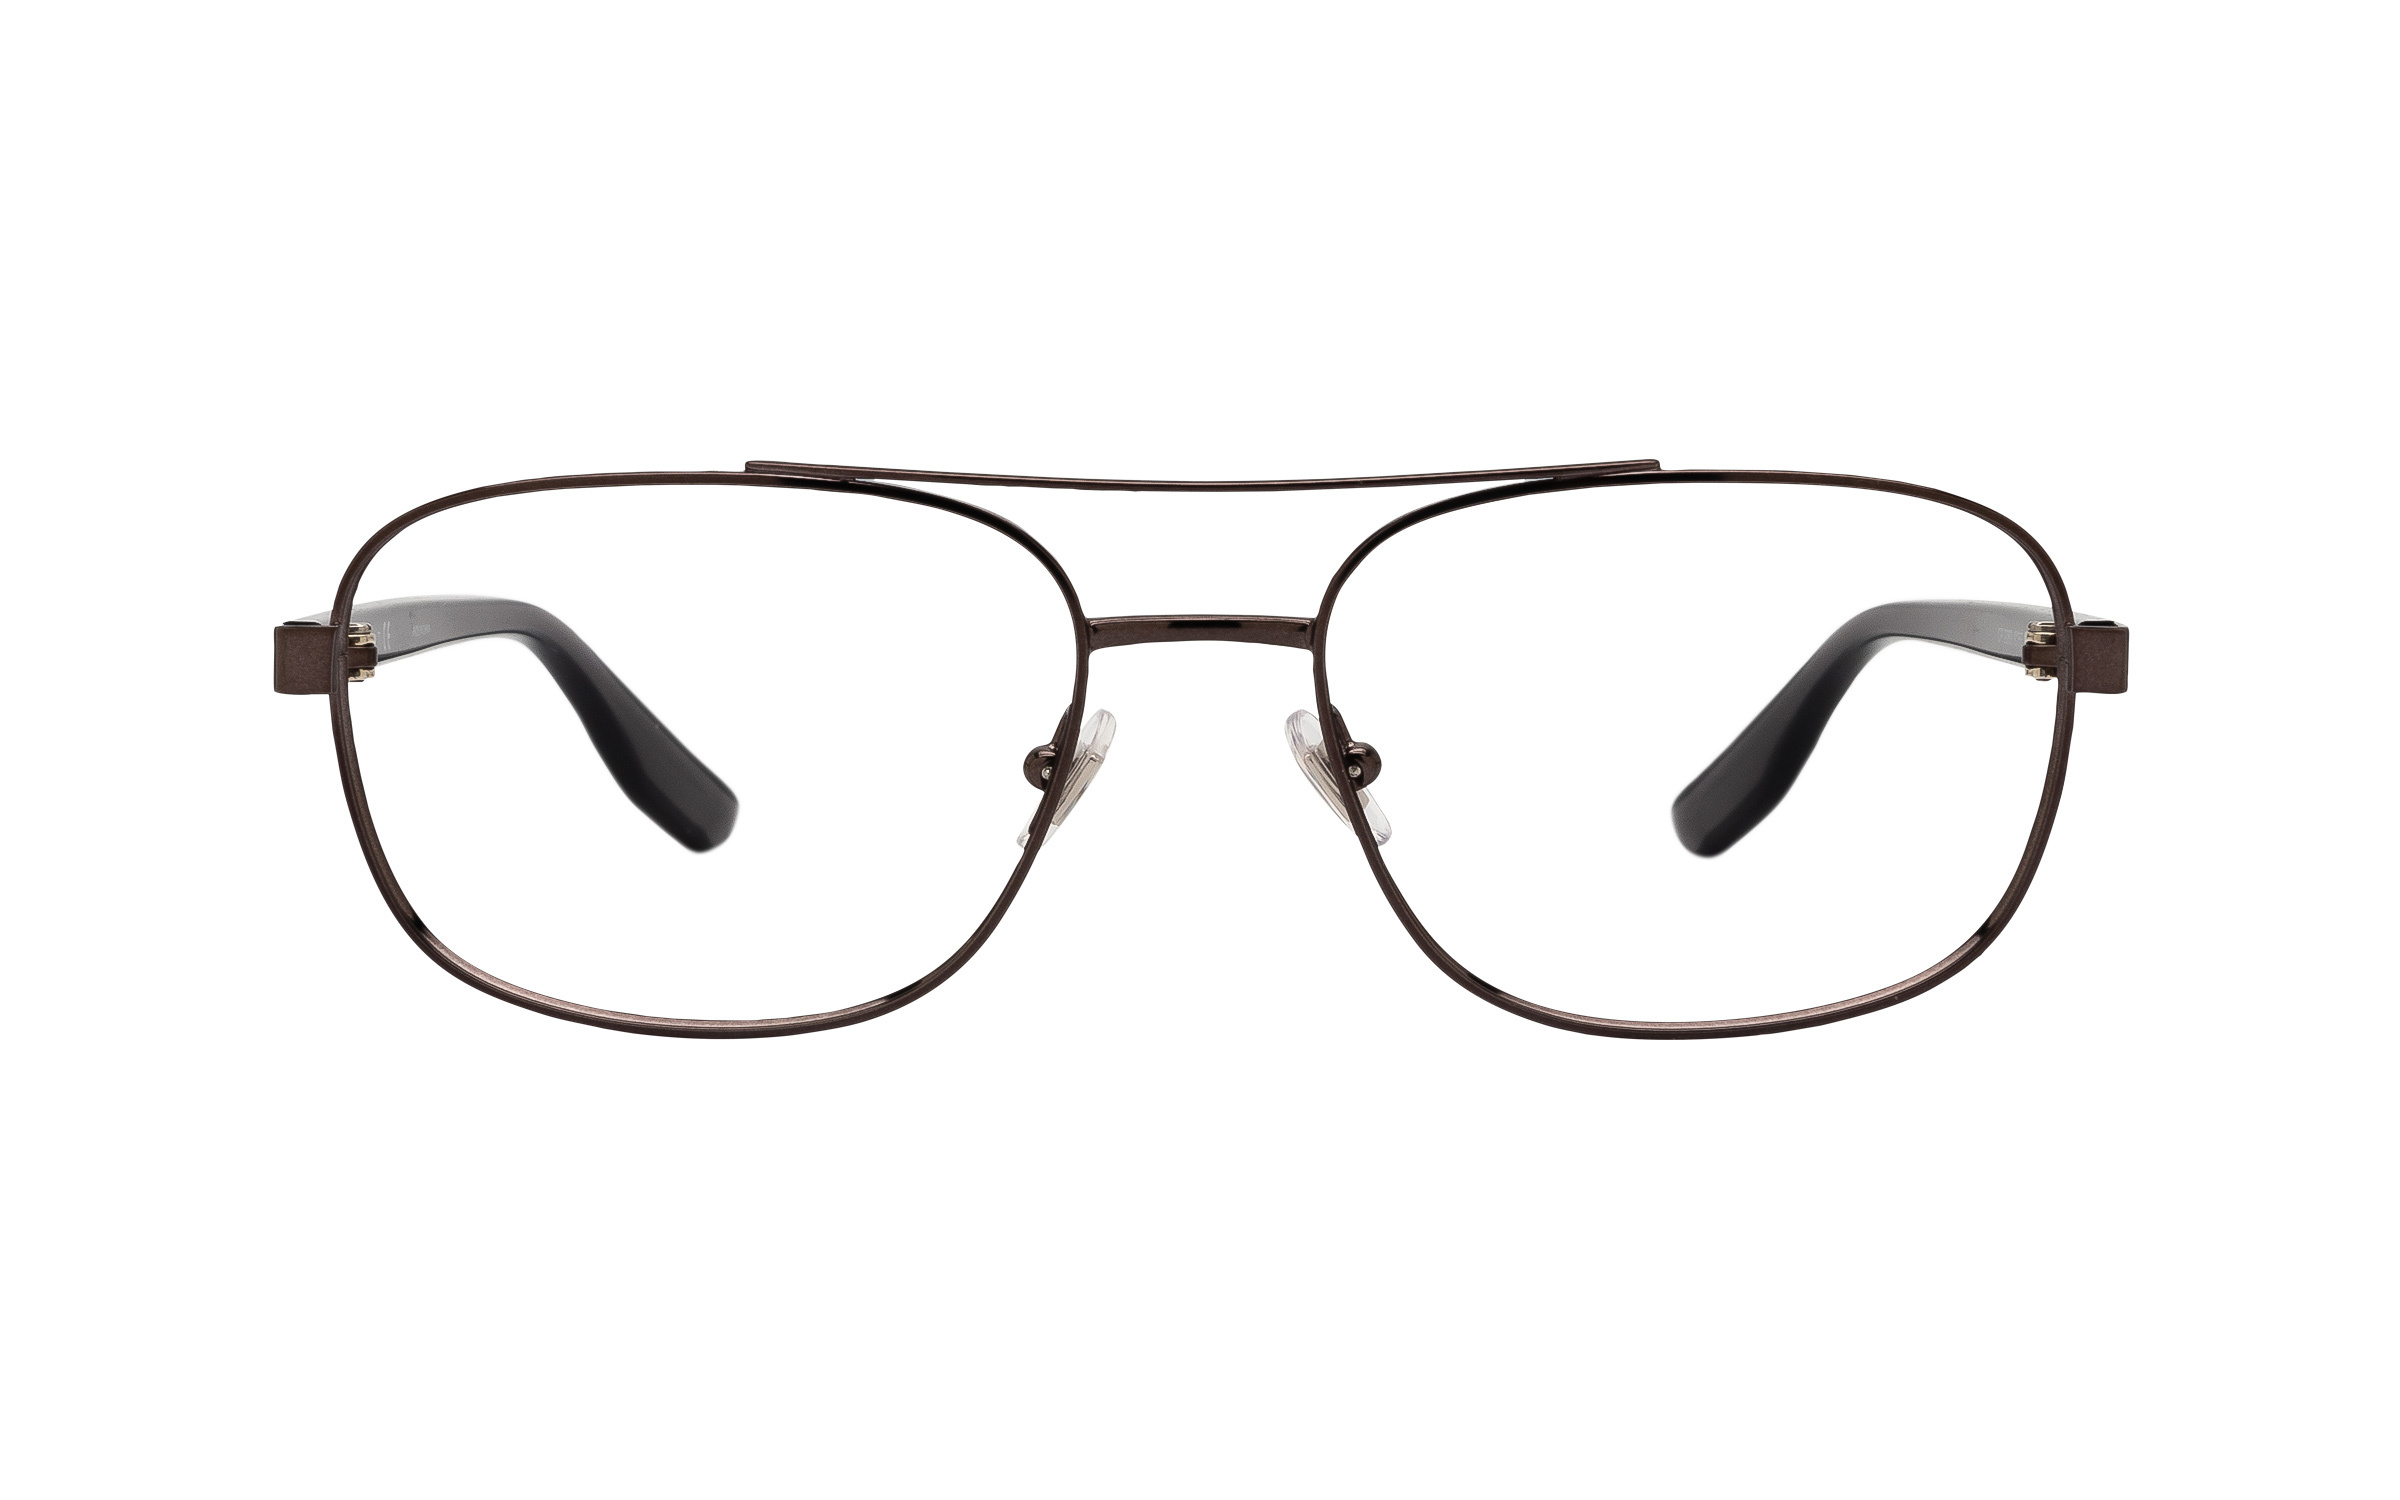 http://www.coastal.com/ - Chaps CP2089 9157 (55) Eyeglasses and Frame in Dark Gunmetal Grey – Online Coastal